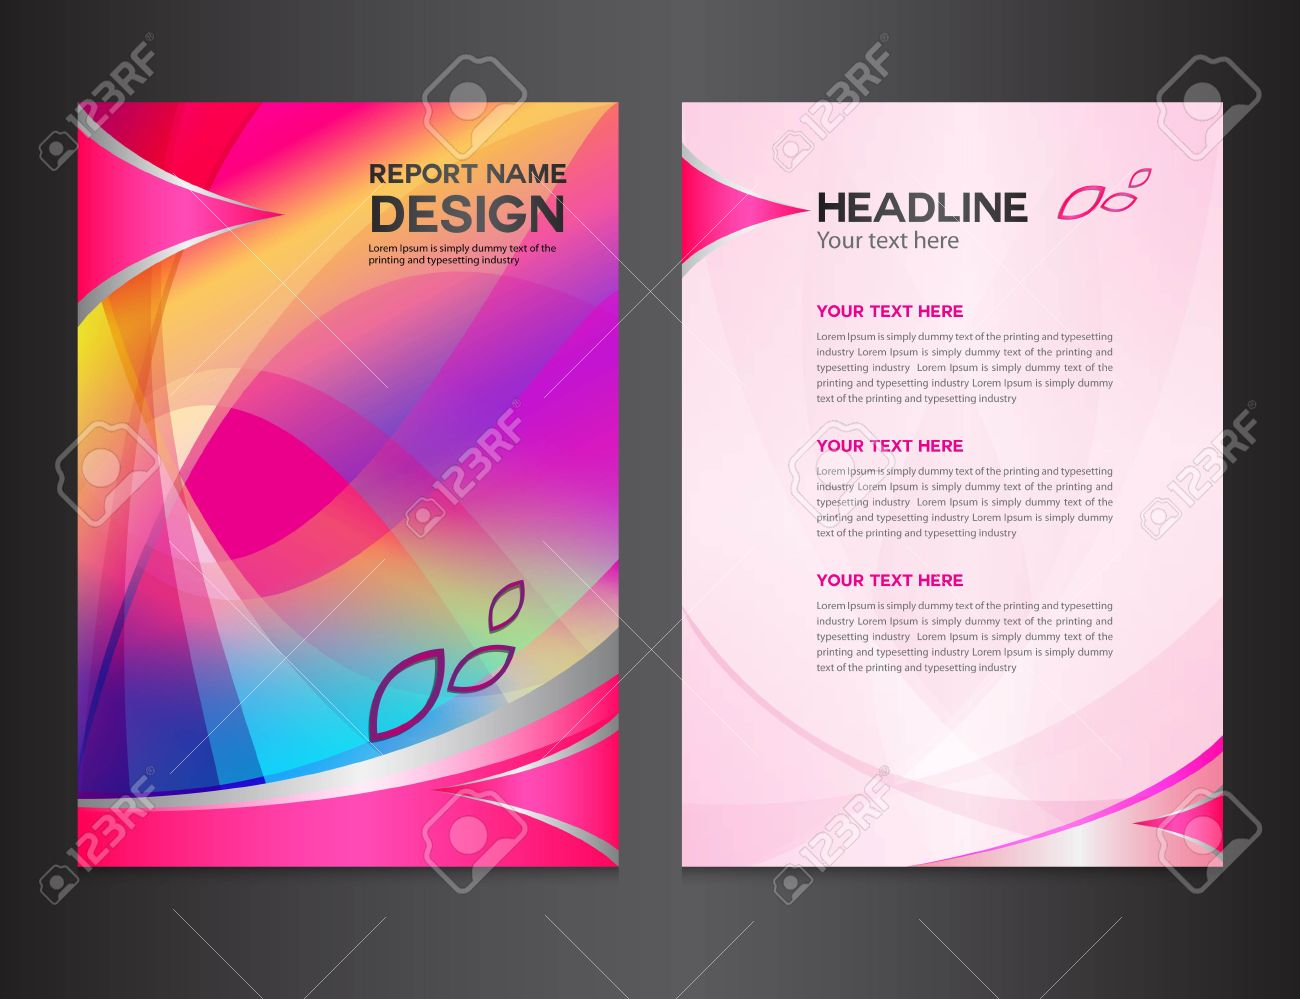 magazine cover on white stock photos images royalty magazine cover on white pink annual report vector illustration cover design brochure design